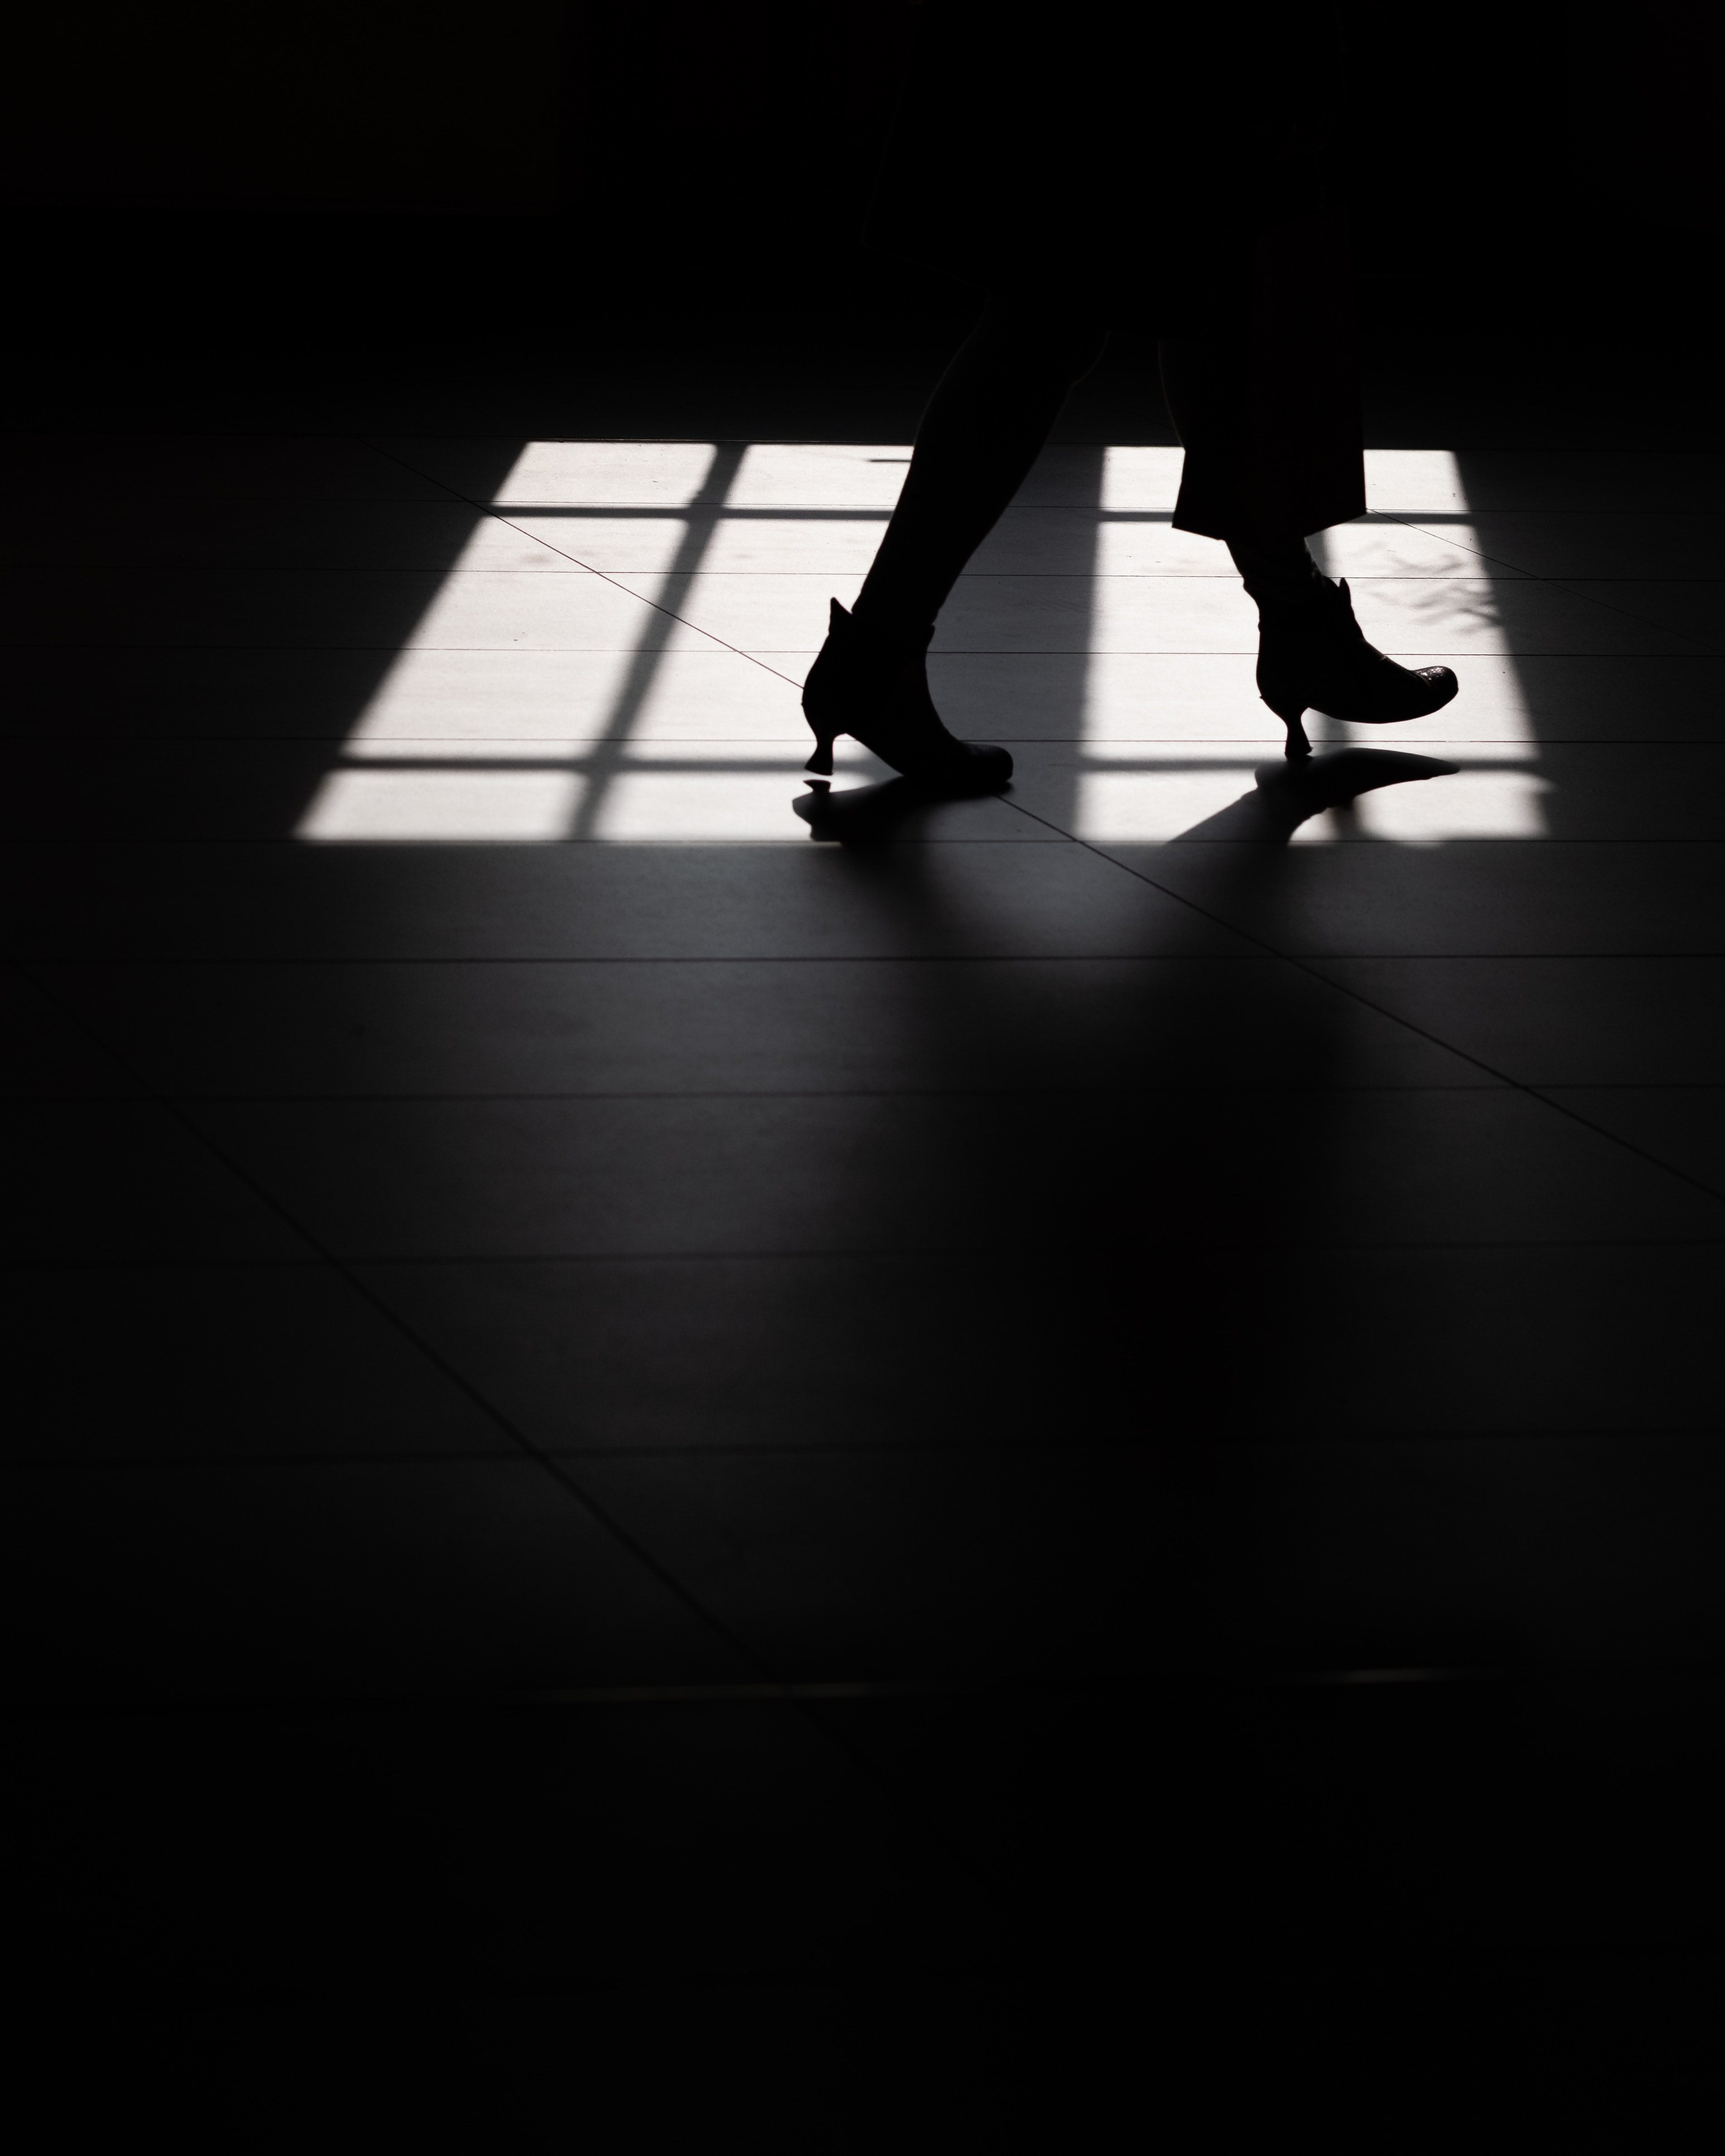 silhouette of person wearing heeled booties